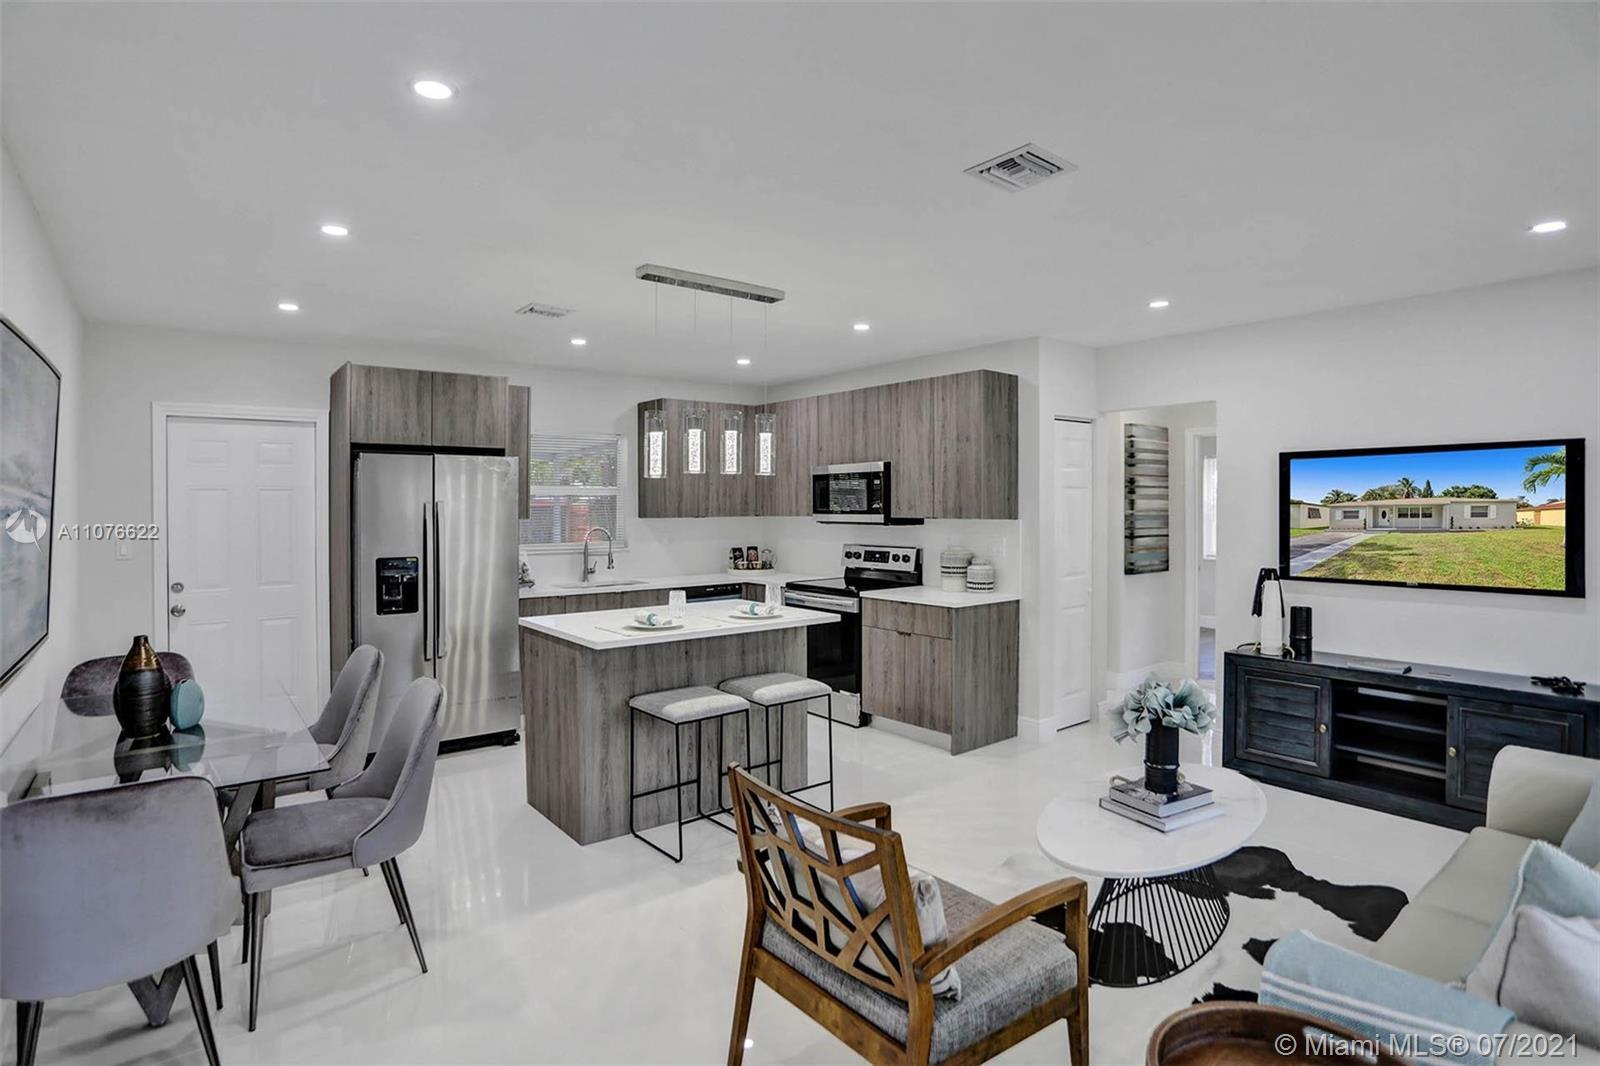 BEAUTIFULLY FULLY REMODELED 3 BEDROOMS 2 BATHROOMS SINGLE-FAMILY HOME IN THE HEART OF HOLLYWOOD! PER